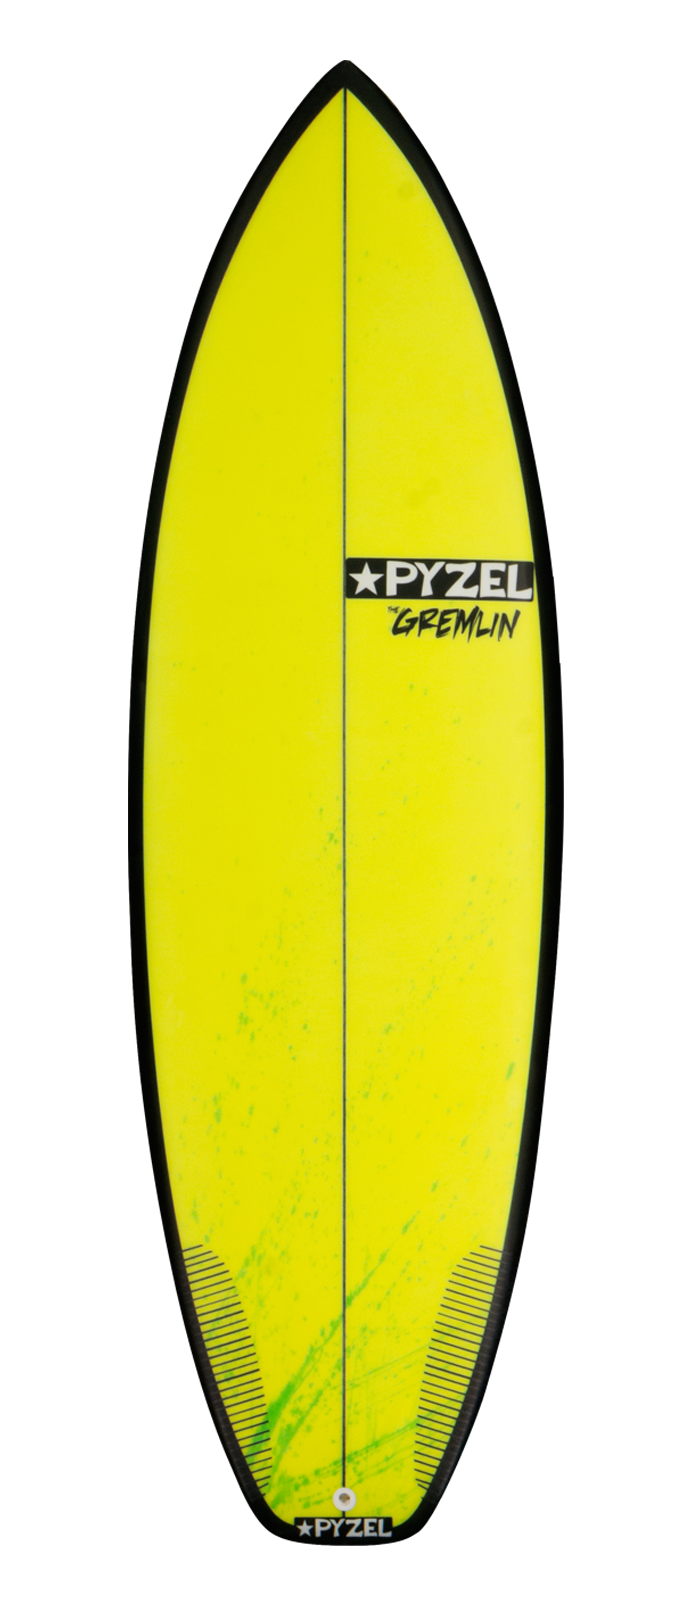 GREMLIN surfboard model deck